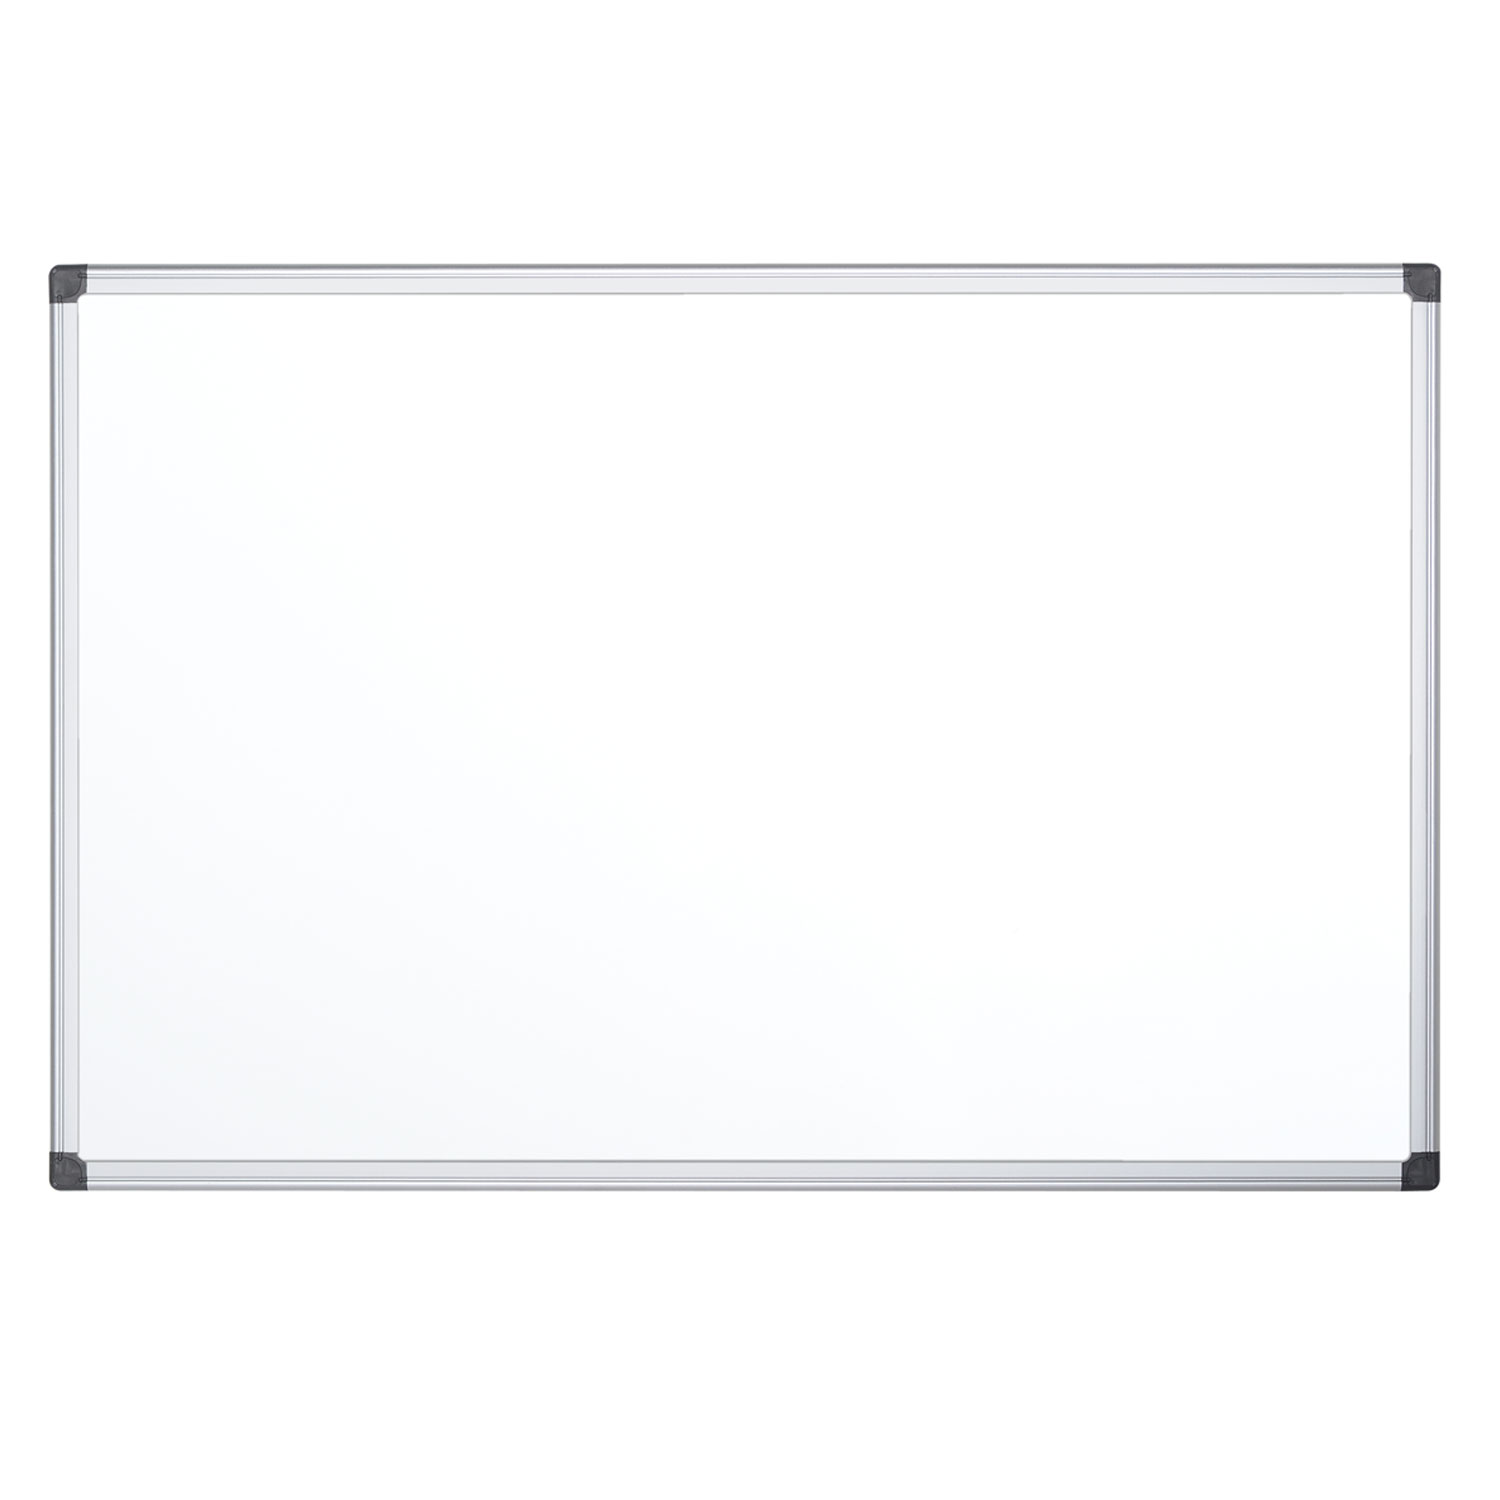 Bi office tableau blanc maill 120 x 90 cm tableau for Tableau magnetique blanc ikea